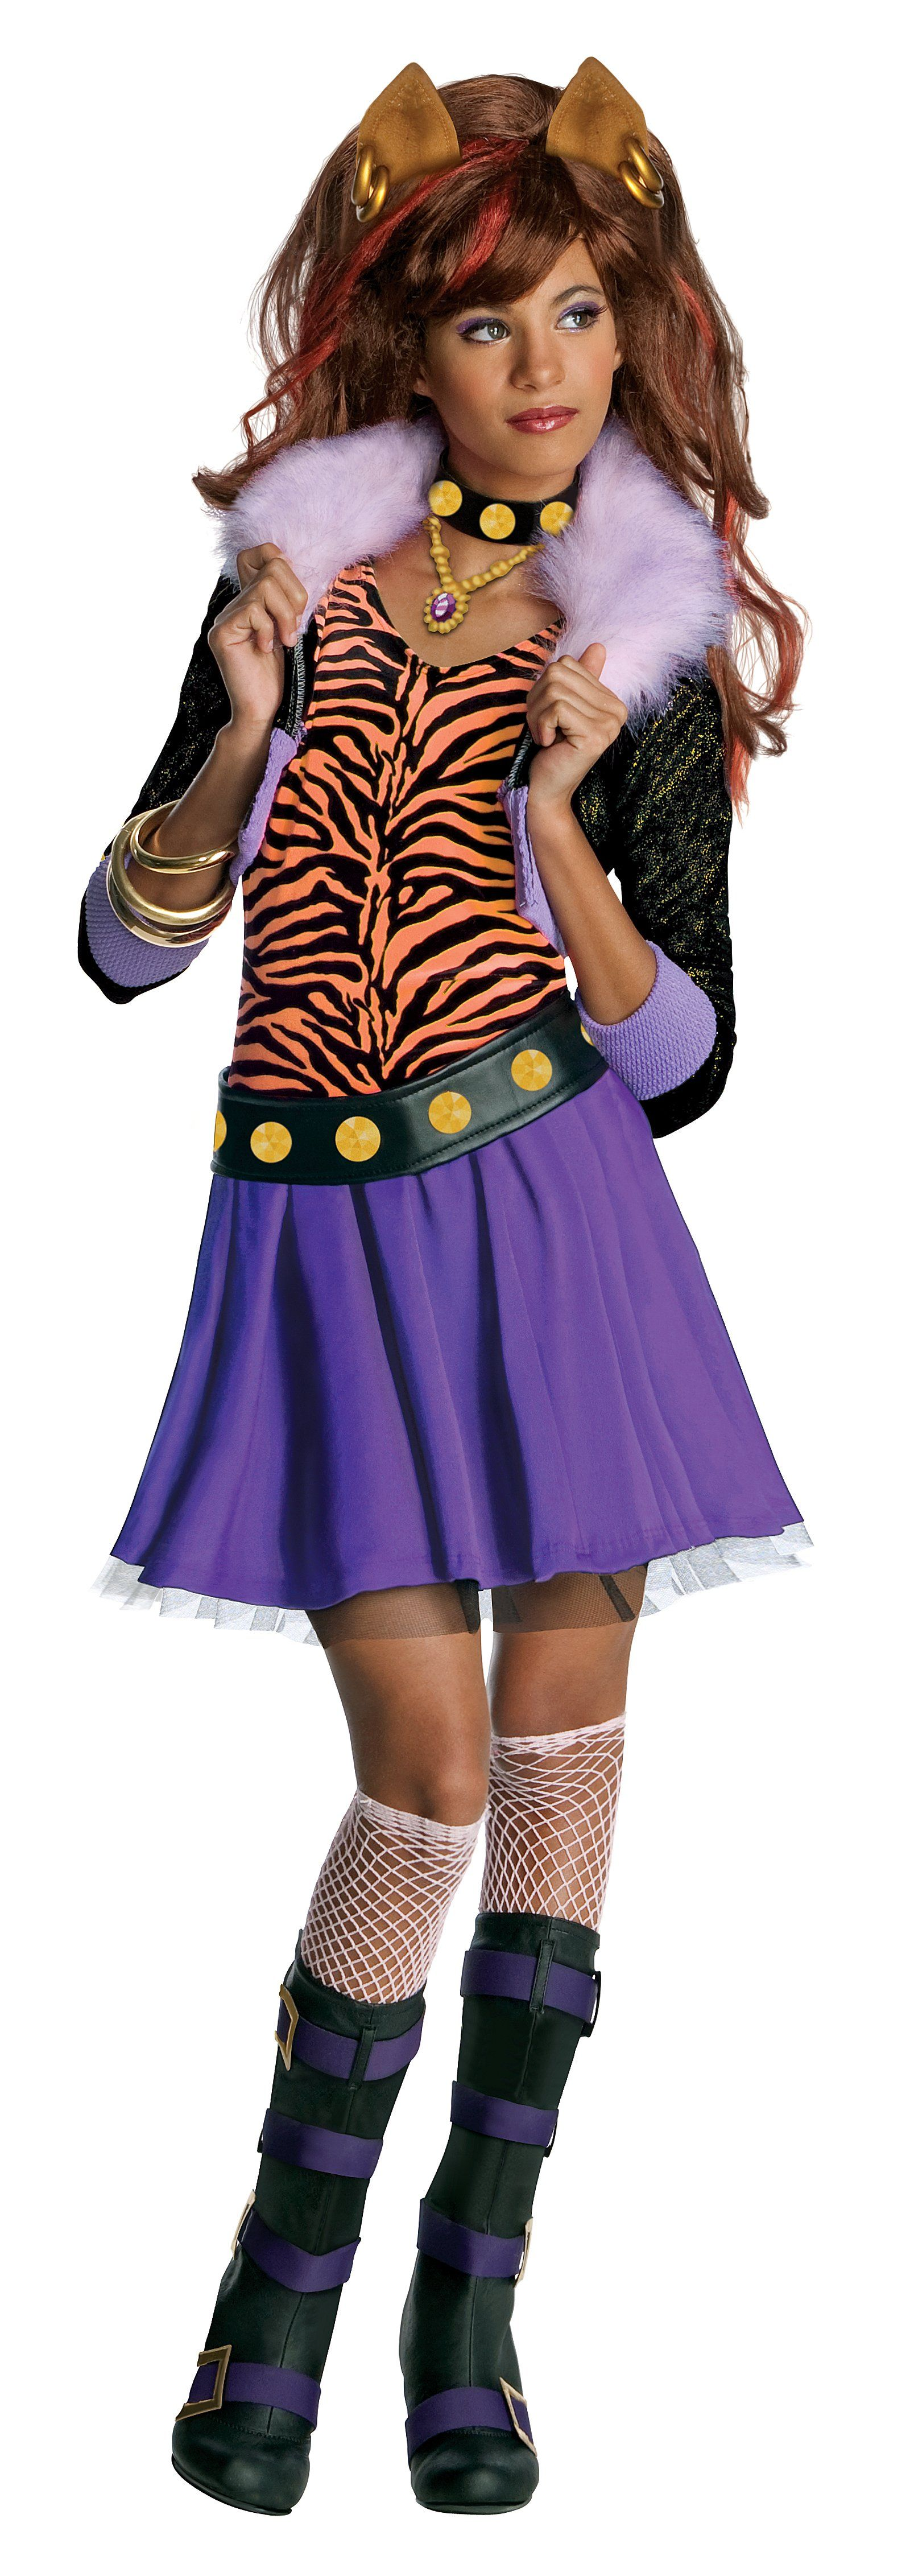 Monster High - Clawdeen Wolf Child Costume | Accesorios